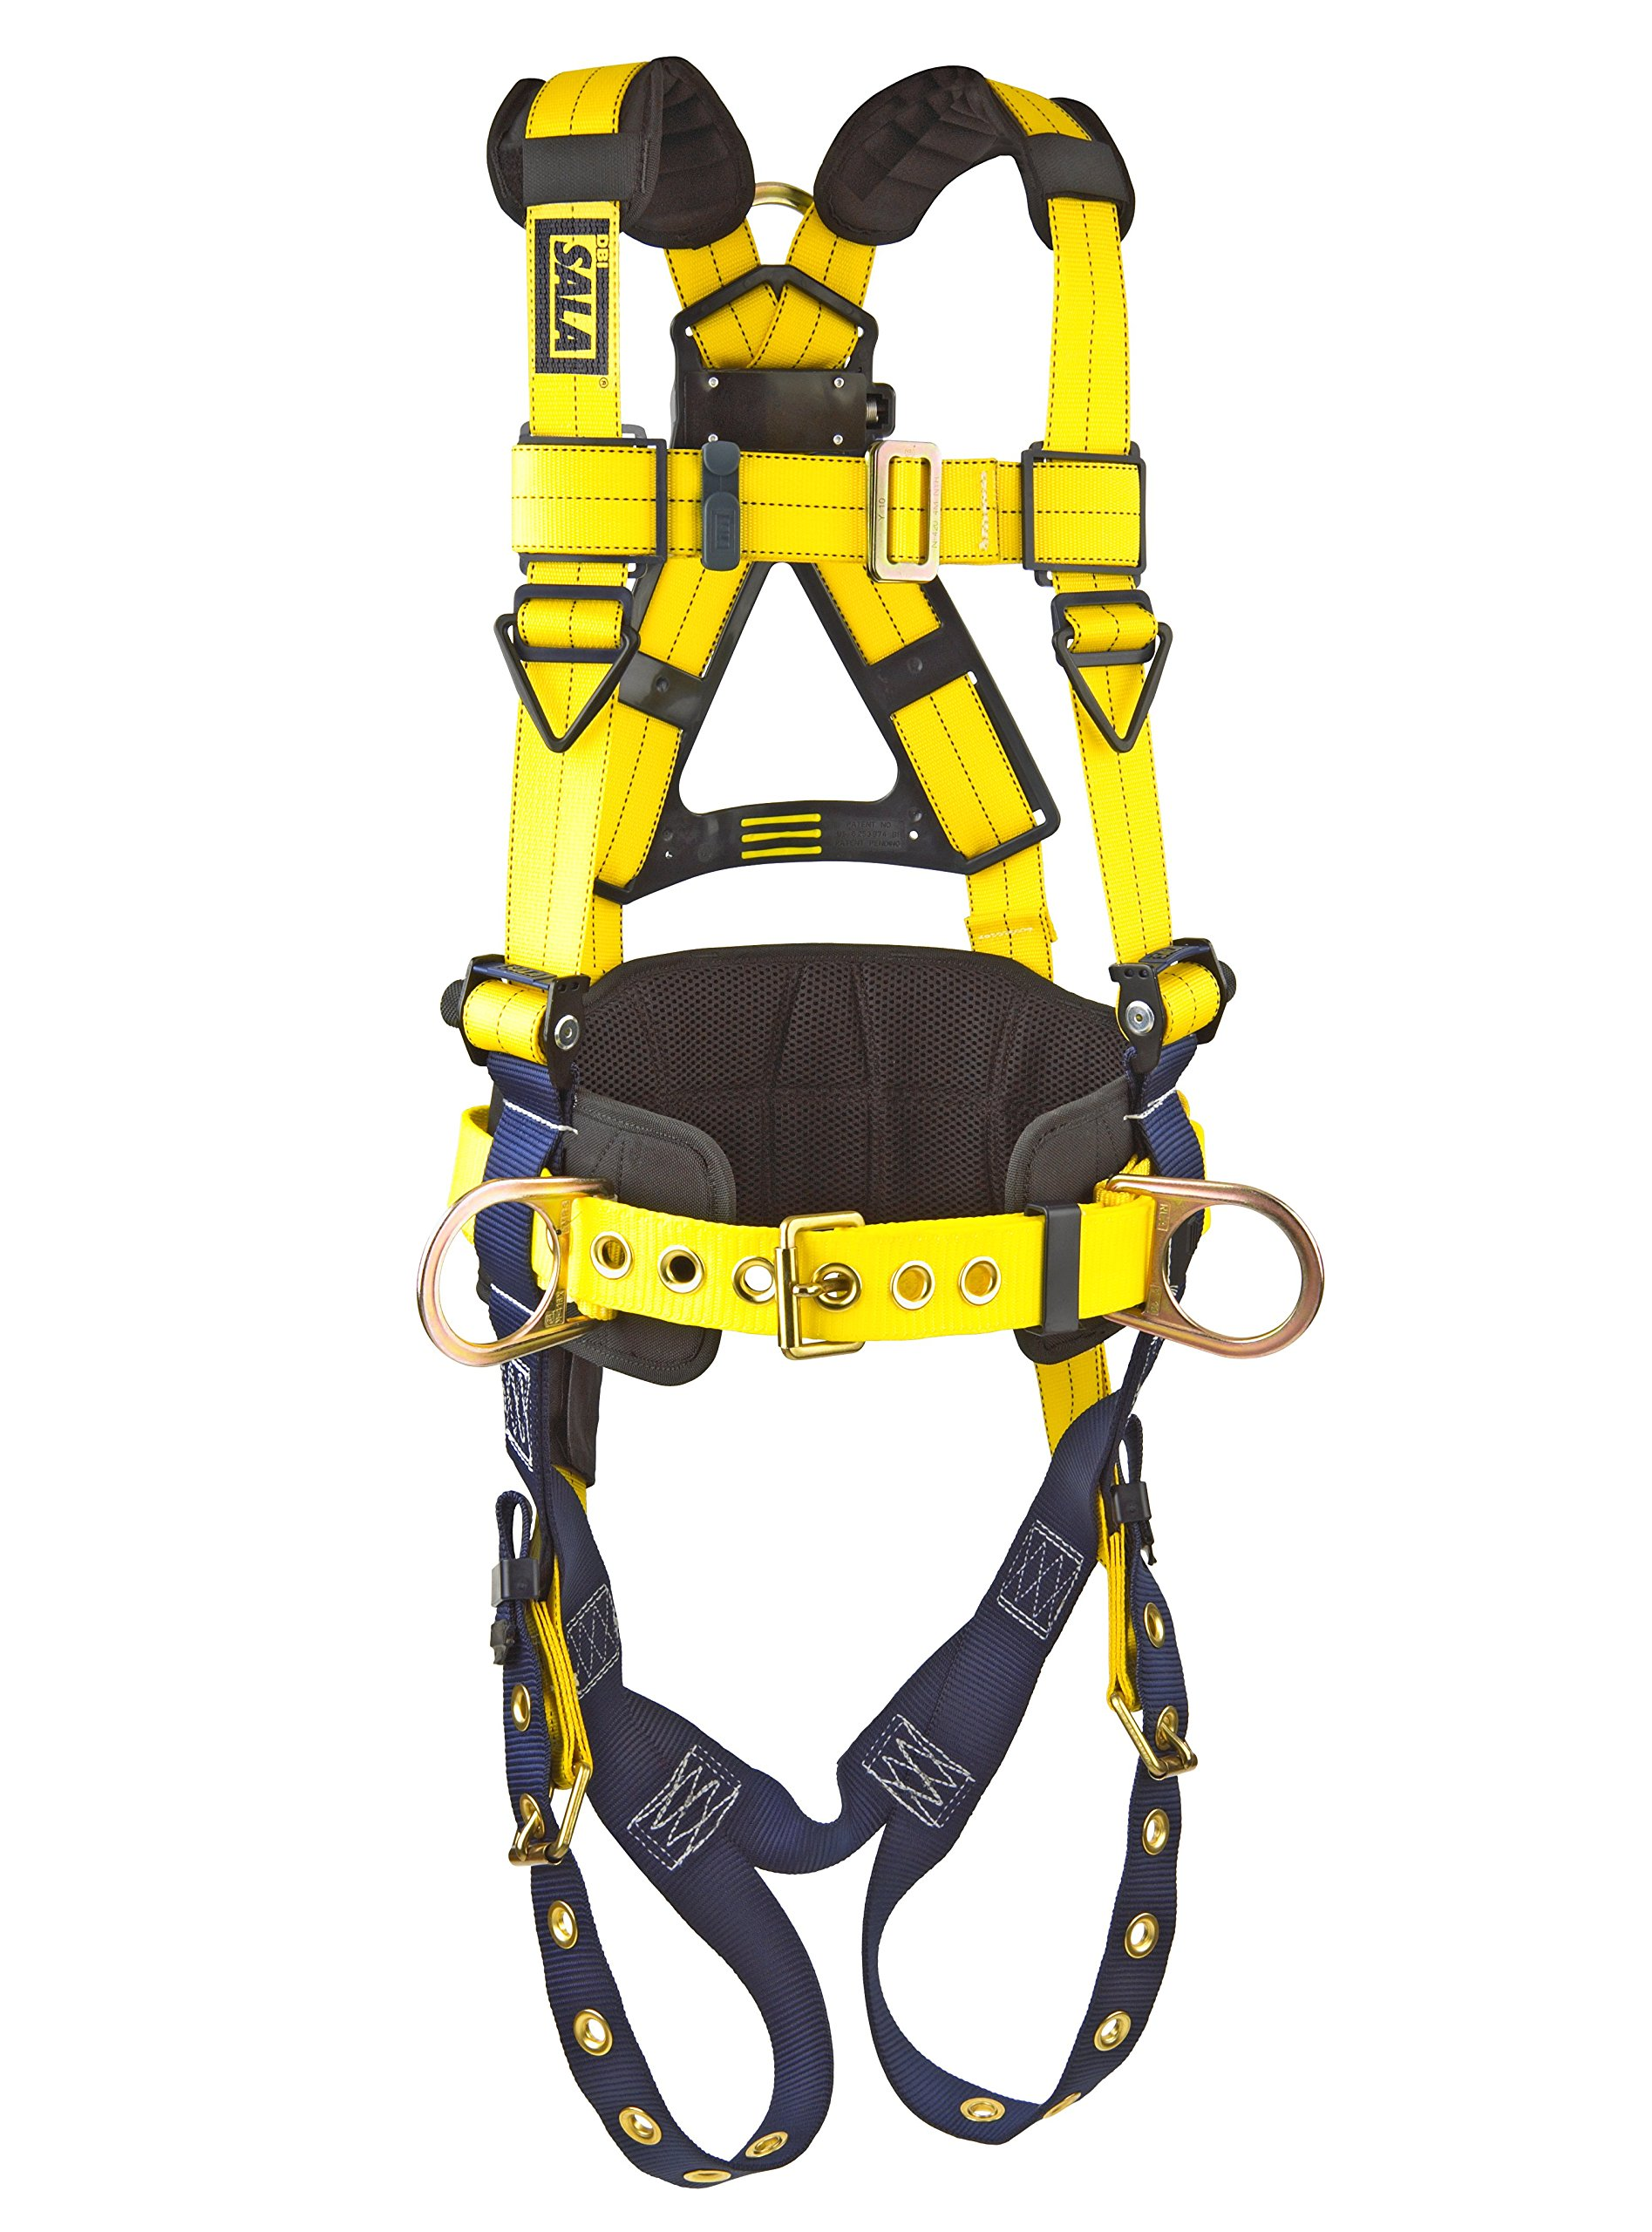 3M DBI-SALA Delta 1101654 Construction Harness, Back/Side D-Rings, Belt w/Sewn-In Back & Shoulder Pads, Tongue Buckle Leg Straps, Medium, Navy/Yellow by 3M Fall Protection Business (Image #2)